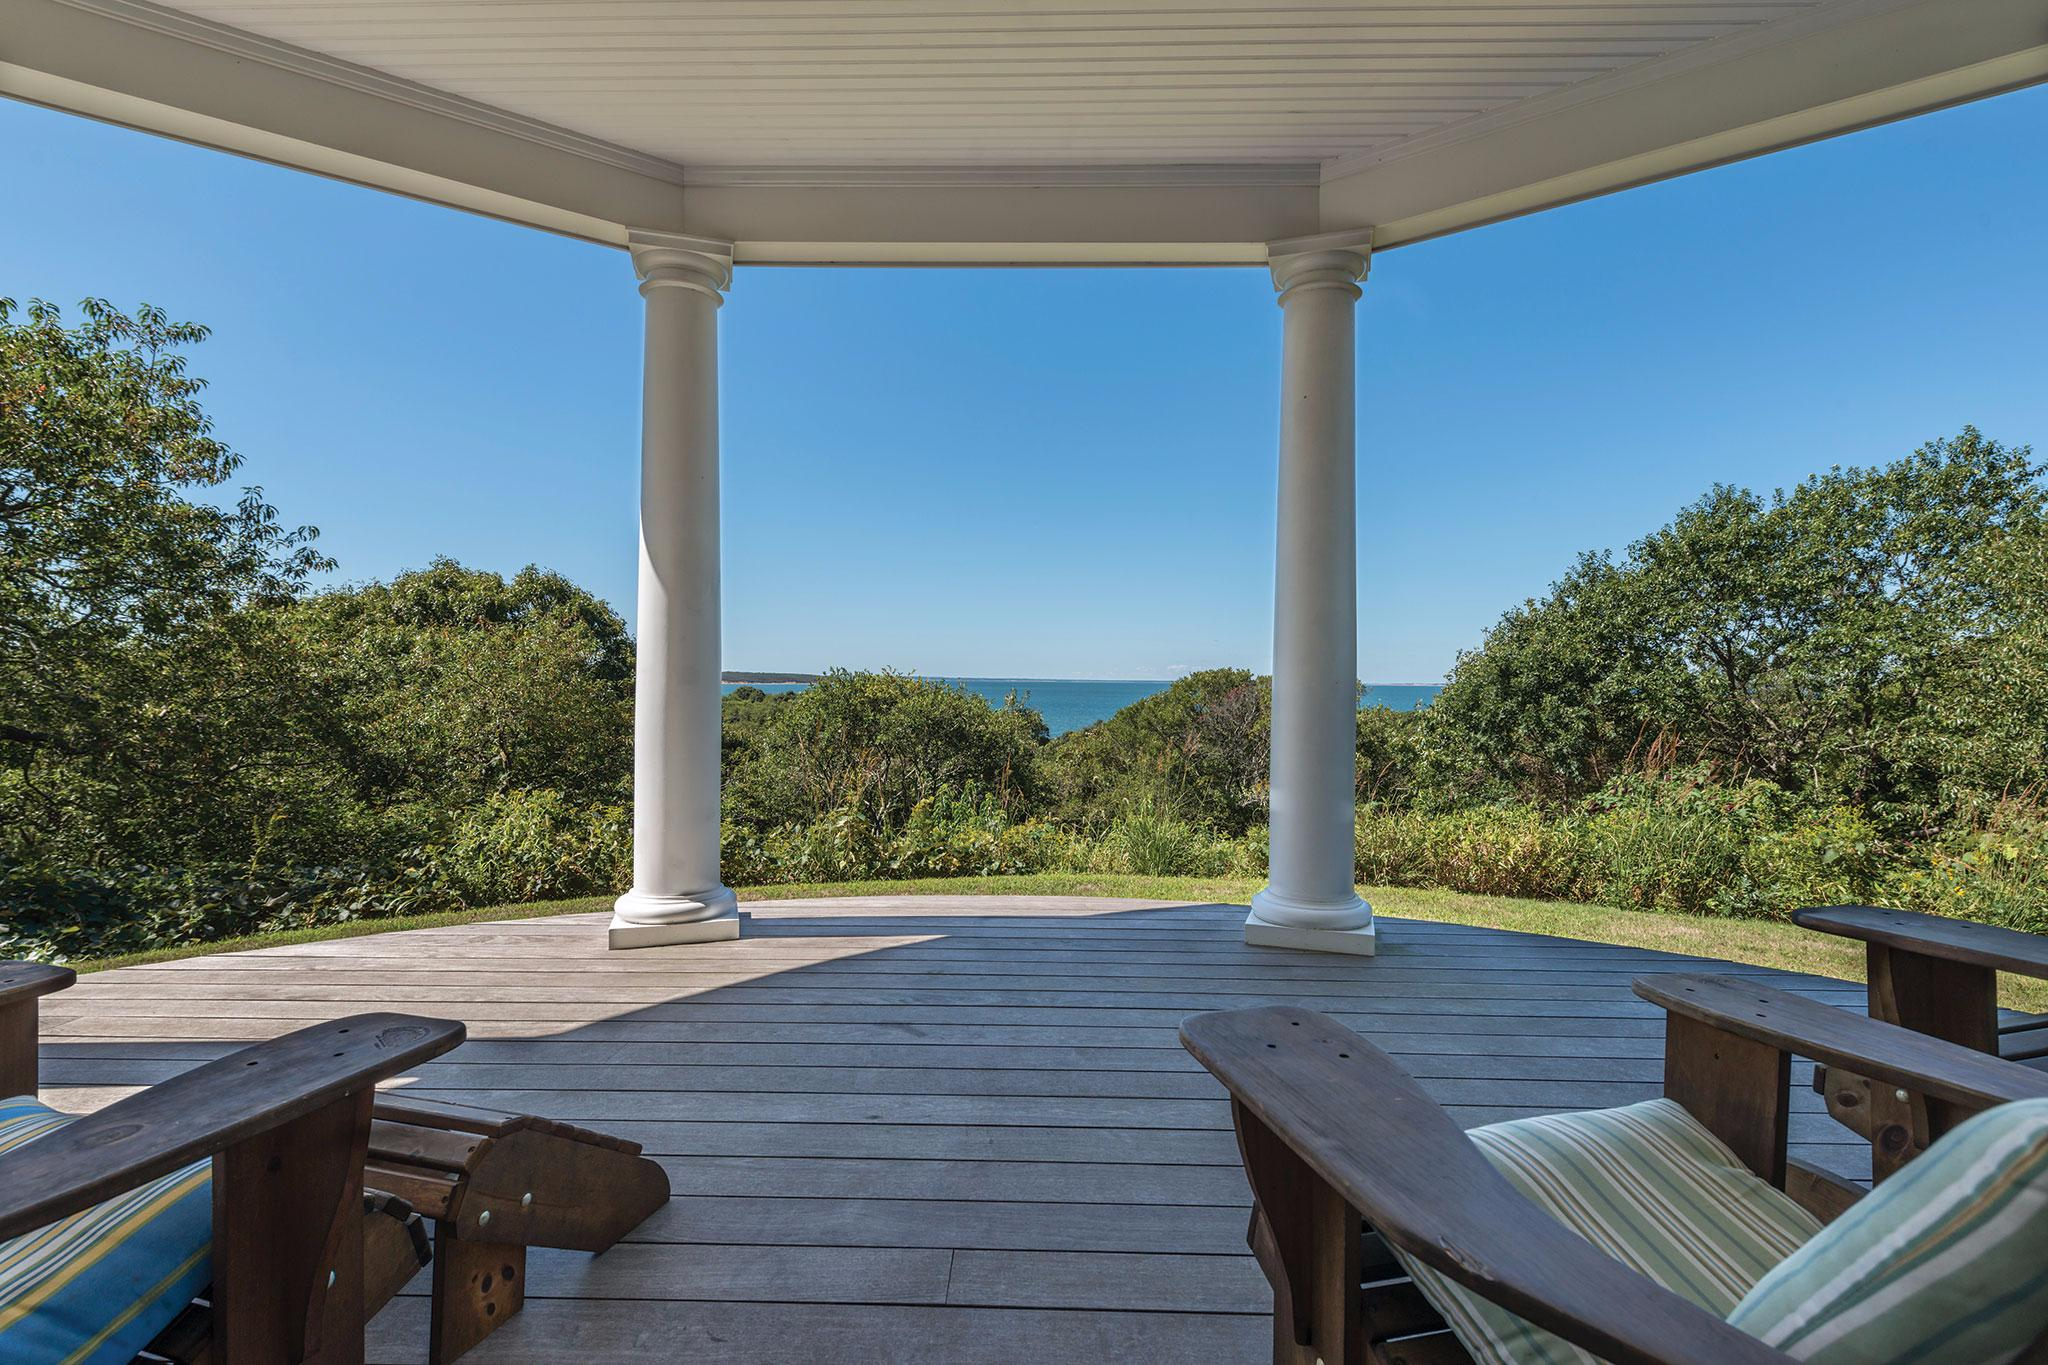 Single Family Home for Sale at Amazing Bay And Sunset Views In Montauk Montauk, New York